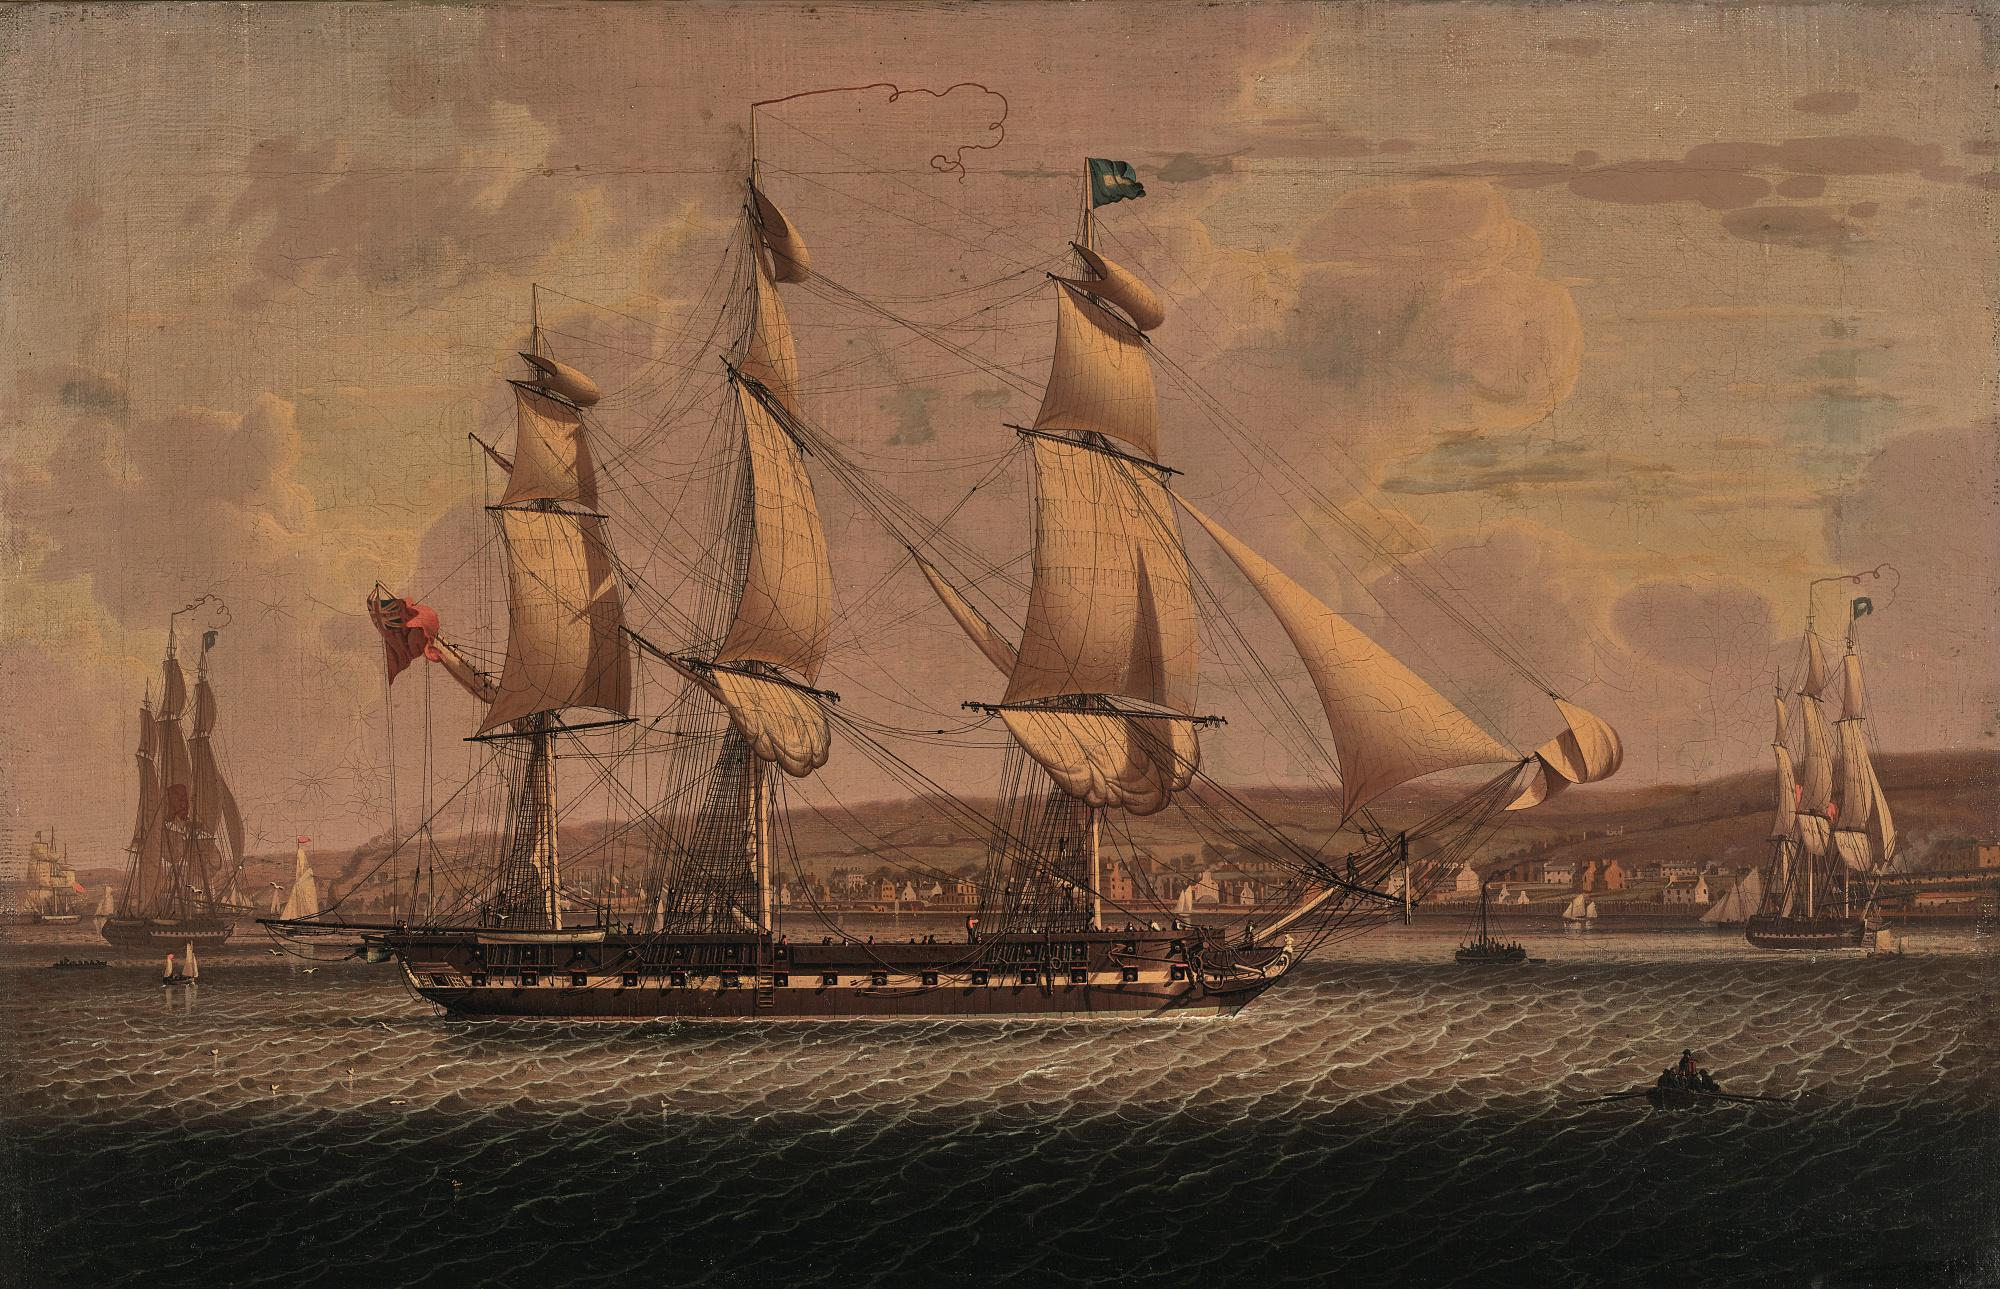 ROBERT SALMON | A MAN-OF-WAR OF THE RED SQUADRON, DEPARTING THE 'TAIL OF THE BANK' ANCHORAGE ON THE CLYDE